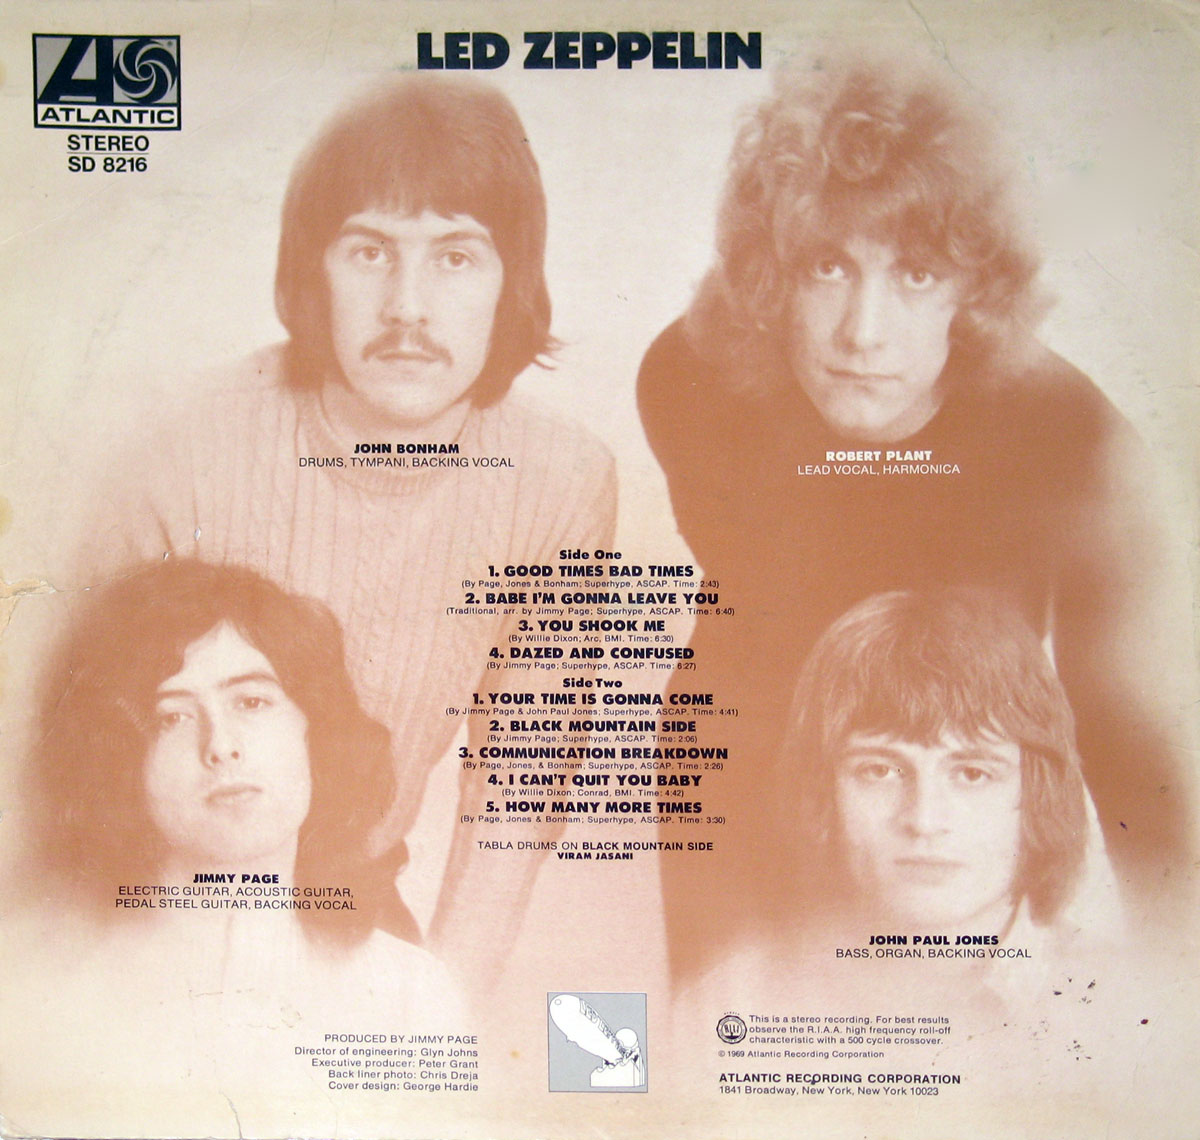 High Resolution Photo of Led Zeppelin - Self-Titled USA release LP